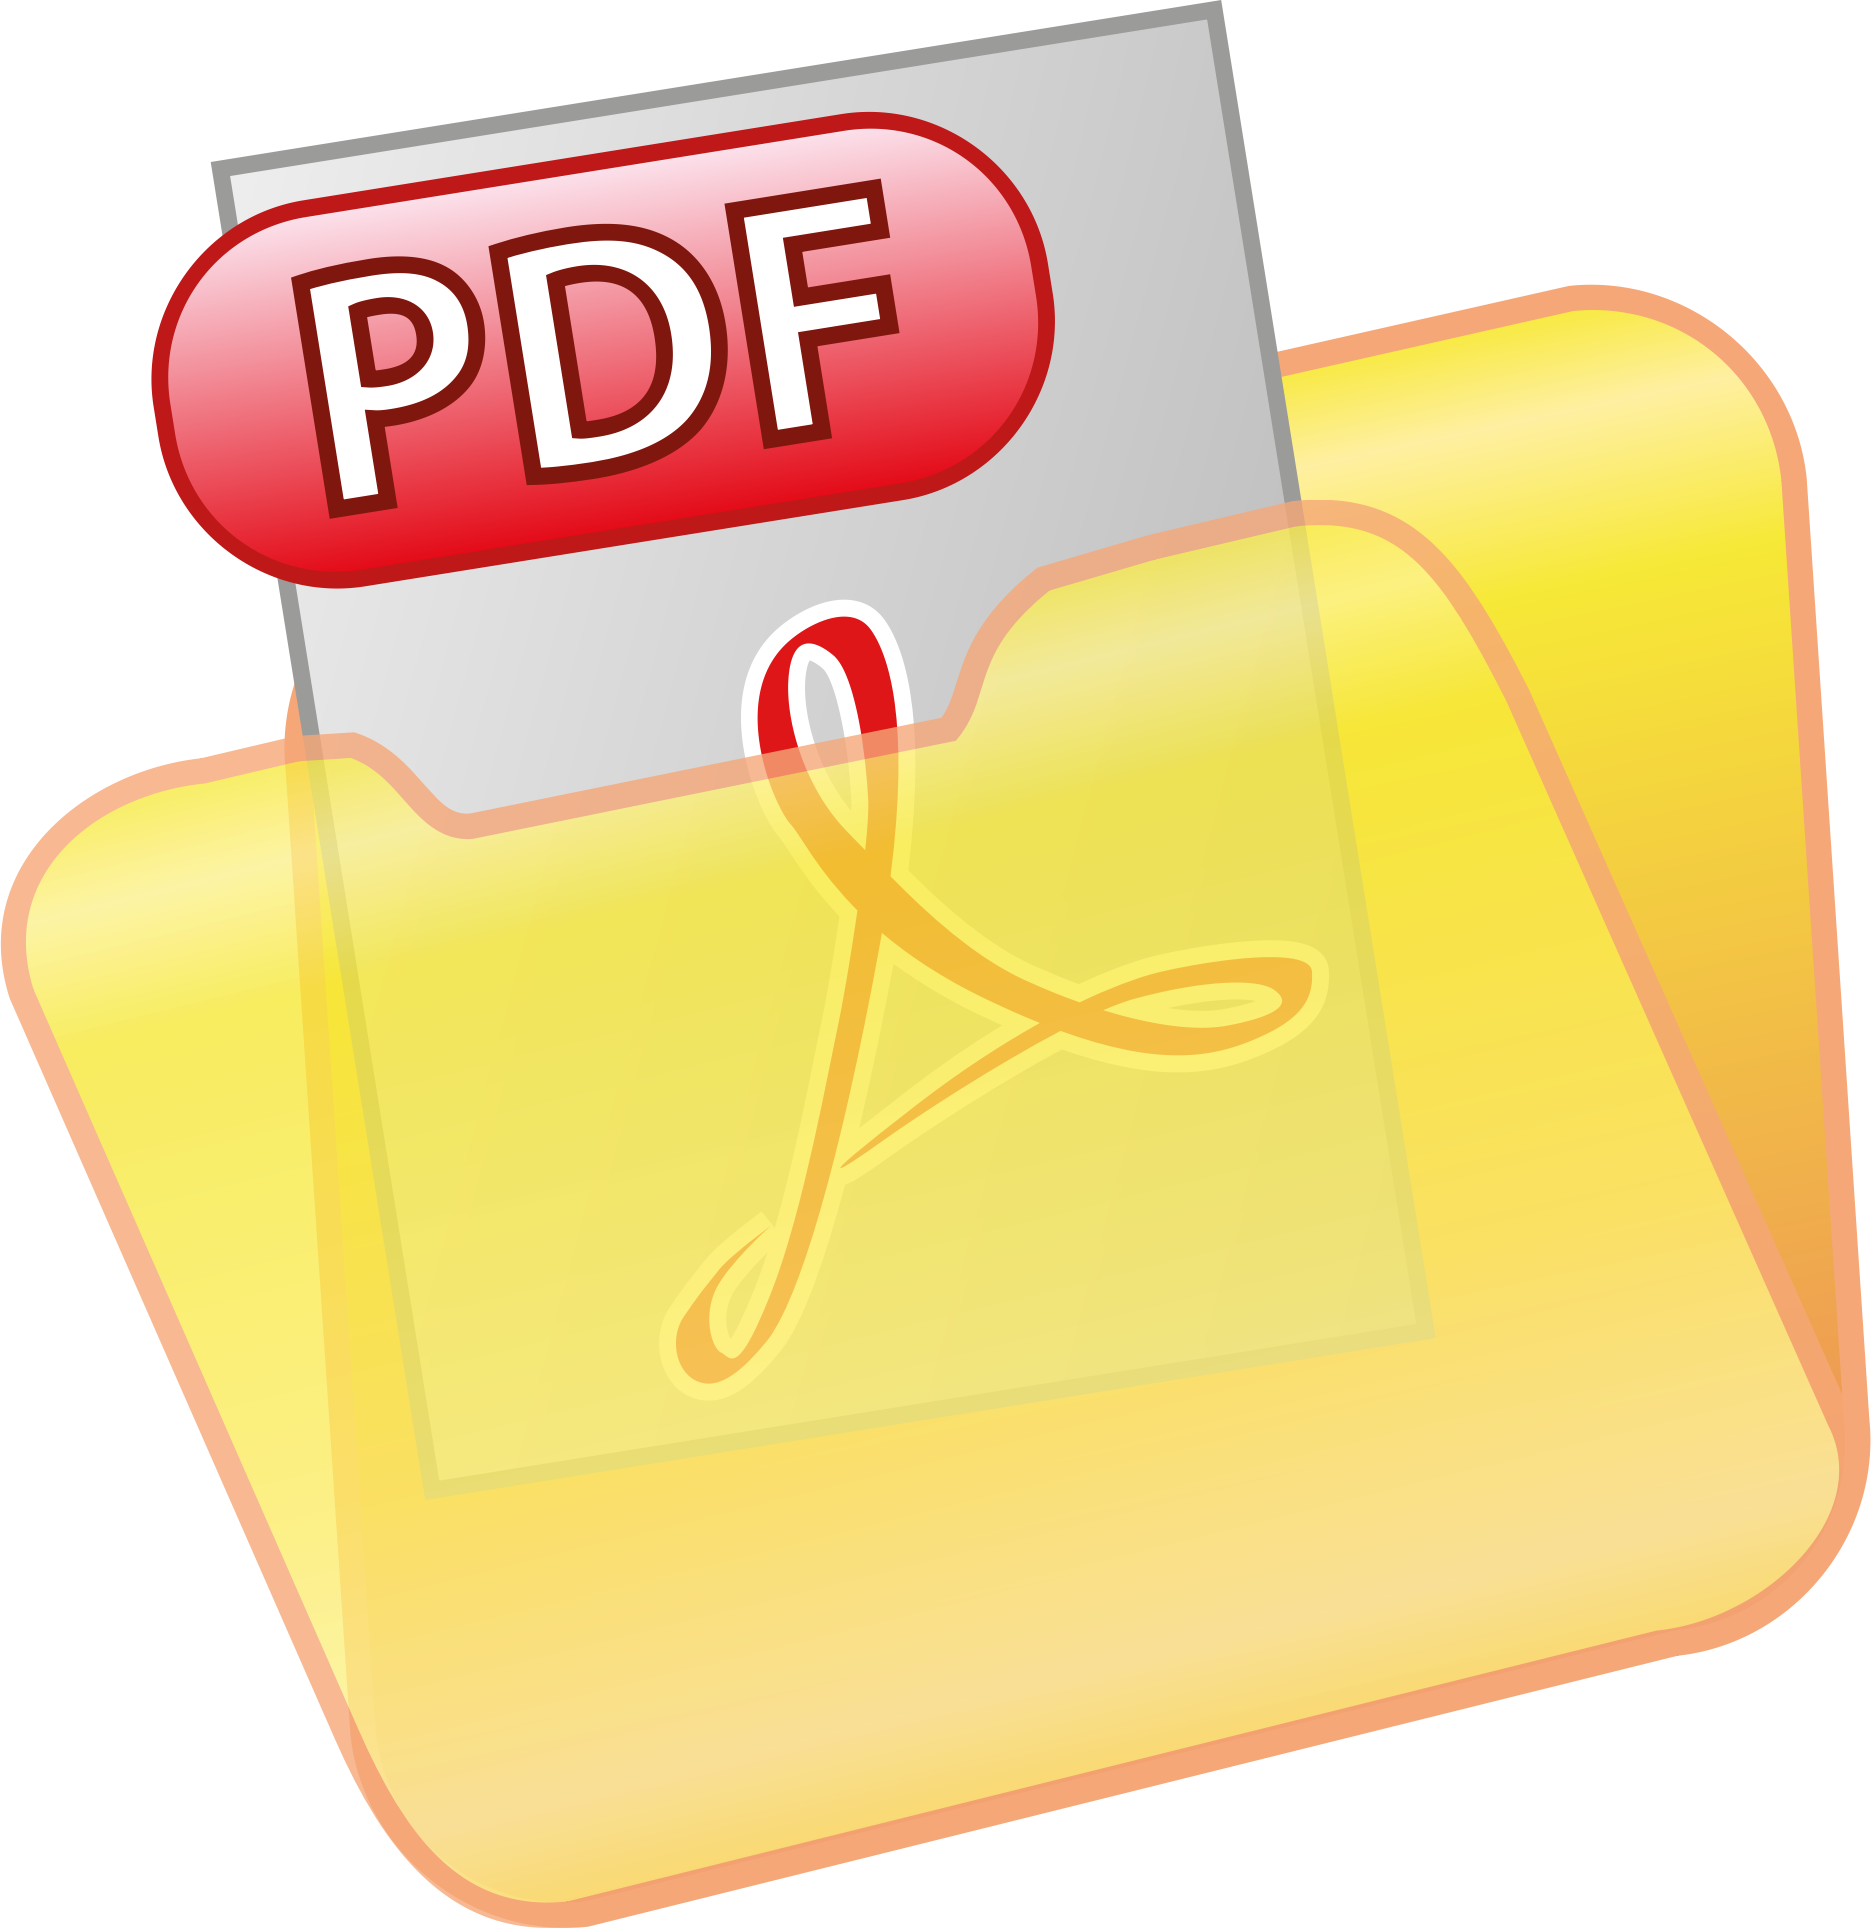 Save PDF Icon by Bus-Germany